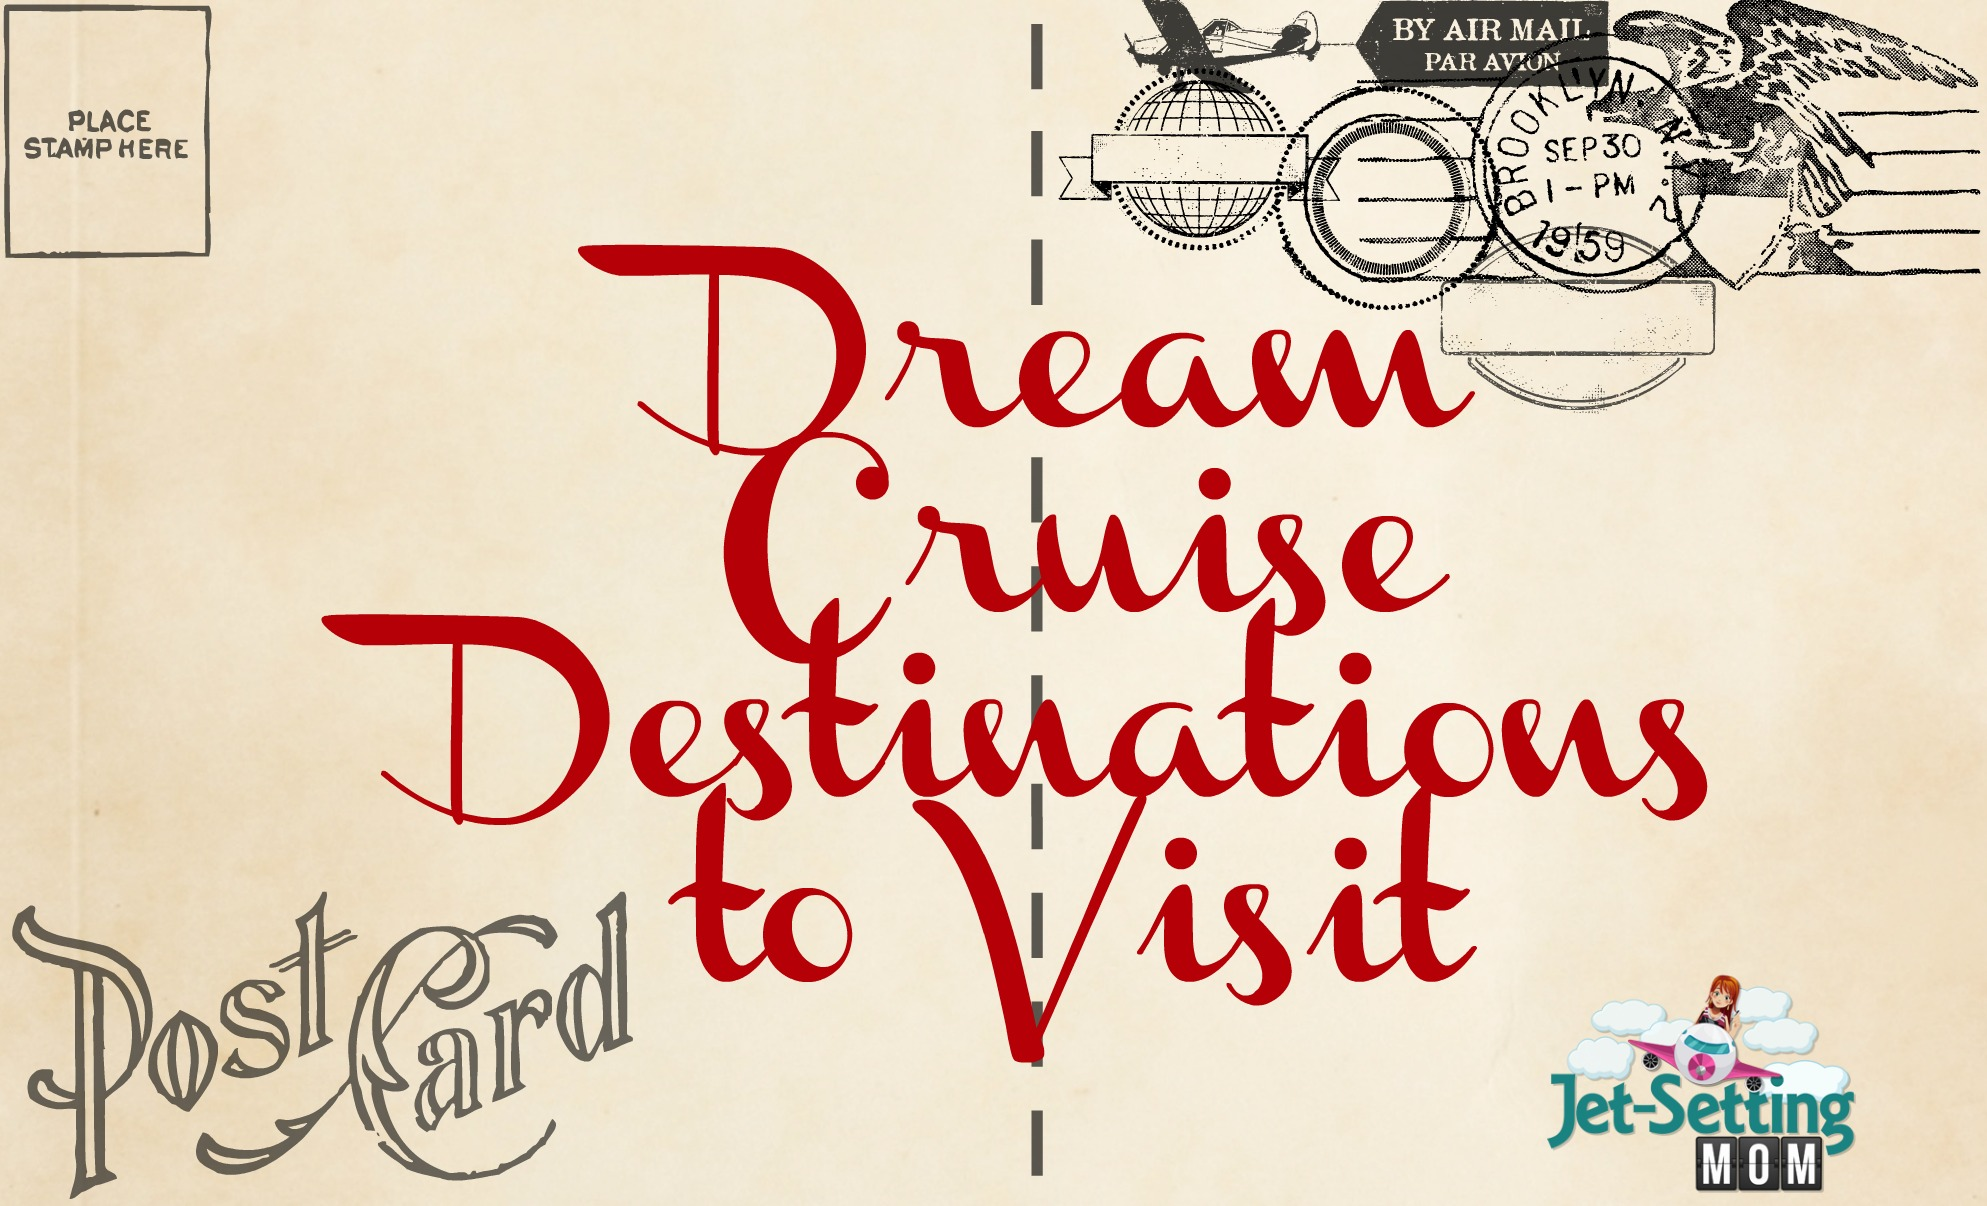 Dream Cruise Destinations To Visit! #travel #familytravel #cruising